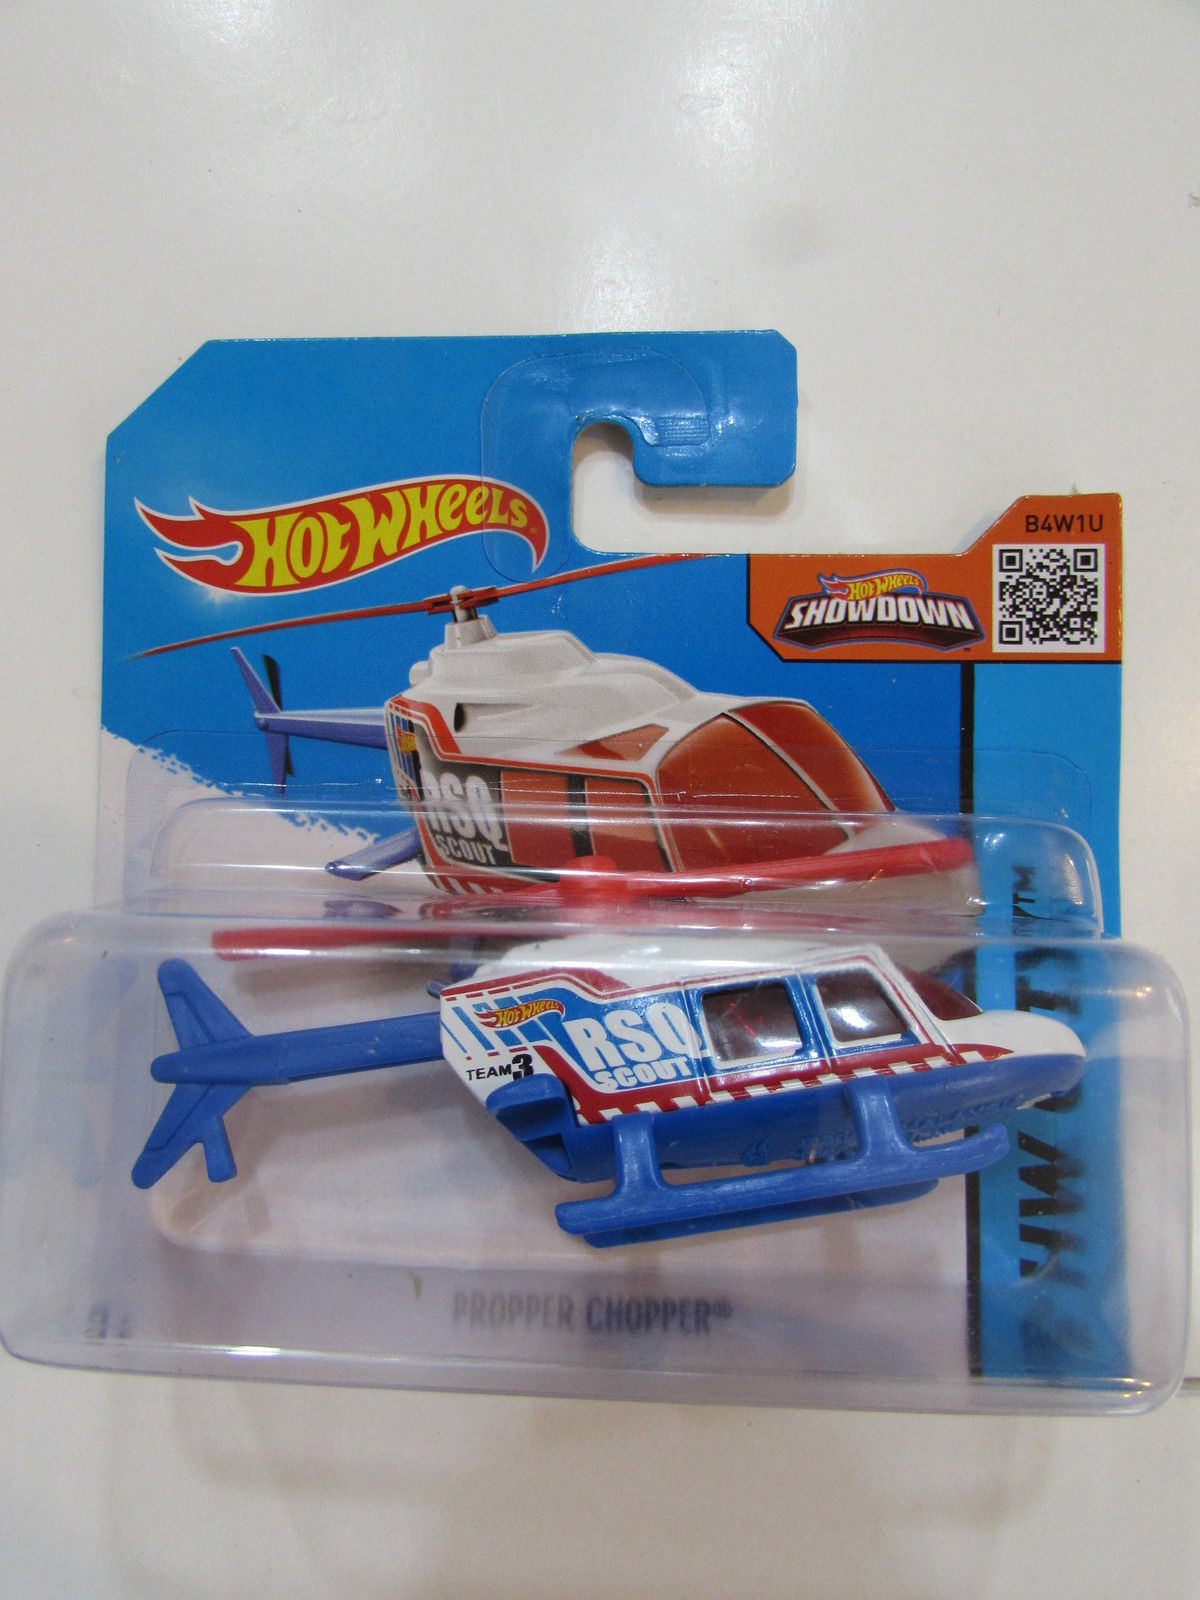 HOT WHEELS 2015 HW CITY - PROPPER CHOPPER BLUE SHORT CARD